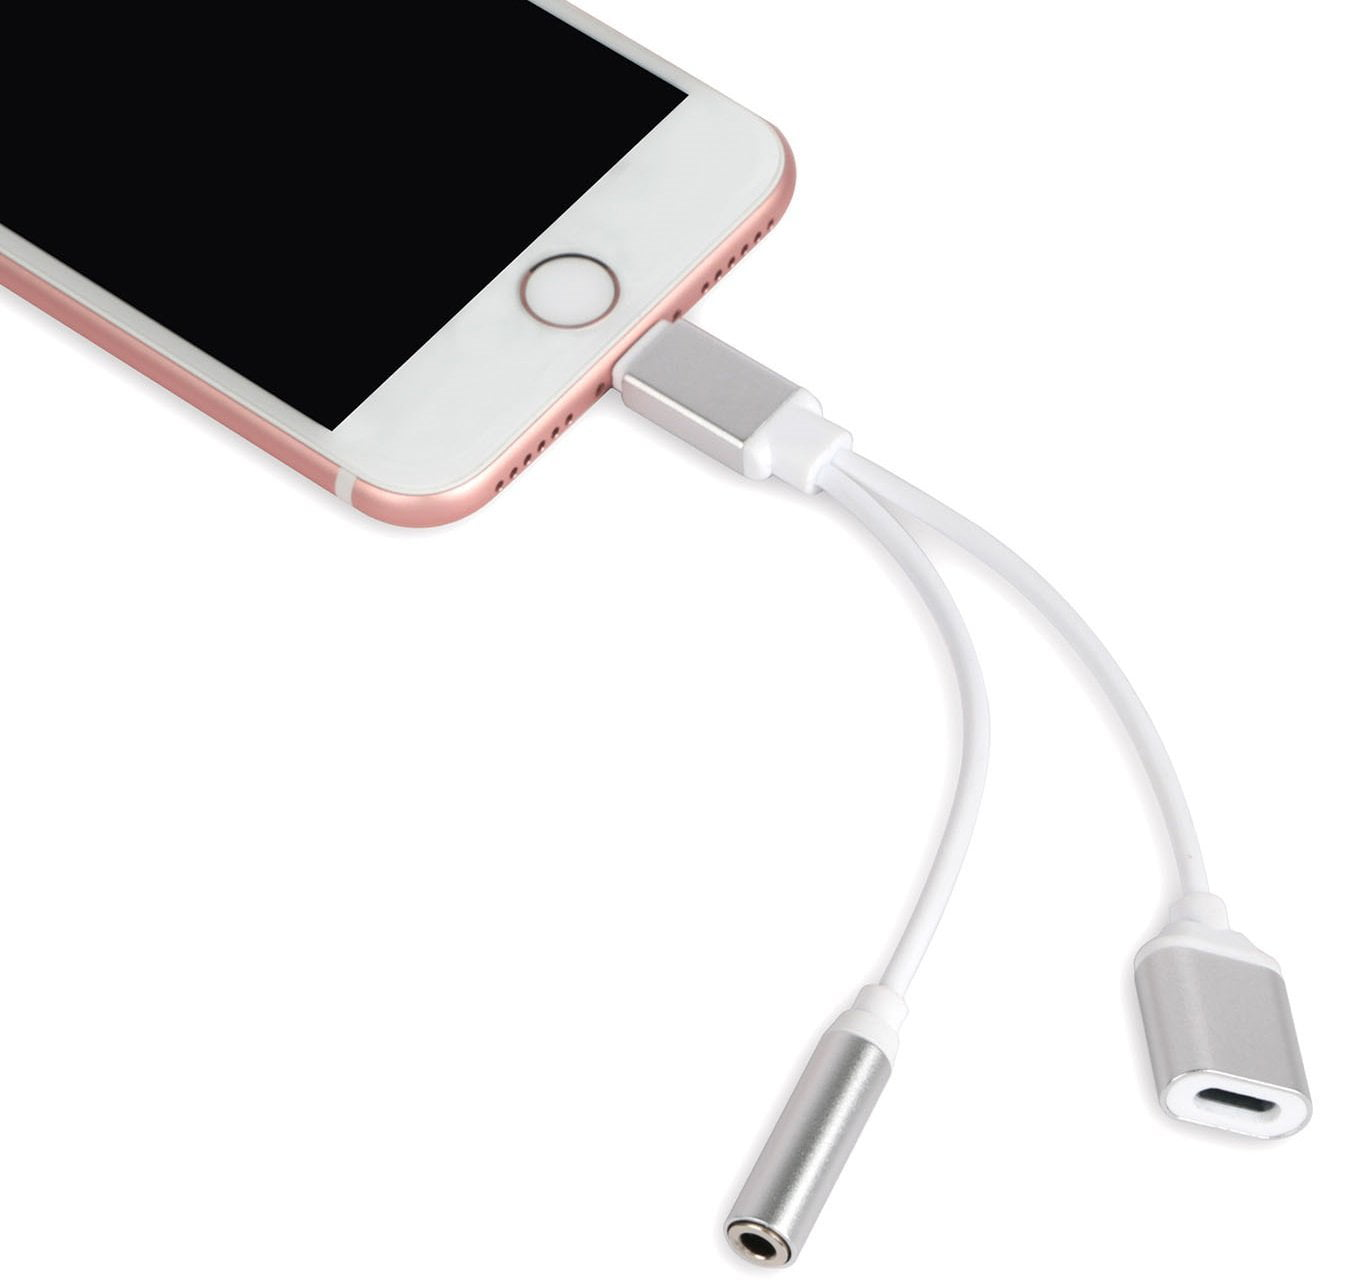 Earbuds iphone 7 connector - iphone 7 dongle headphones adapter